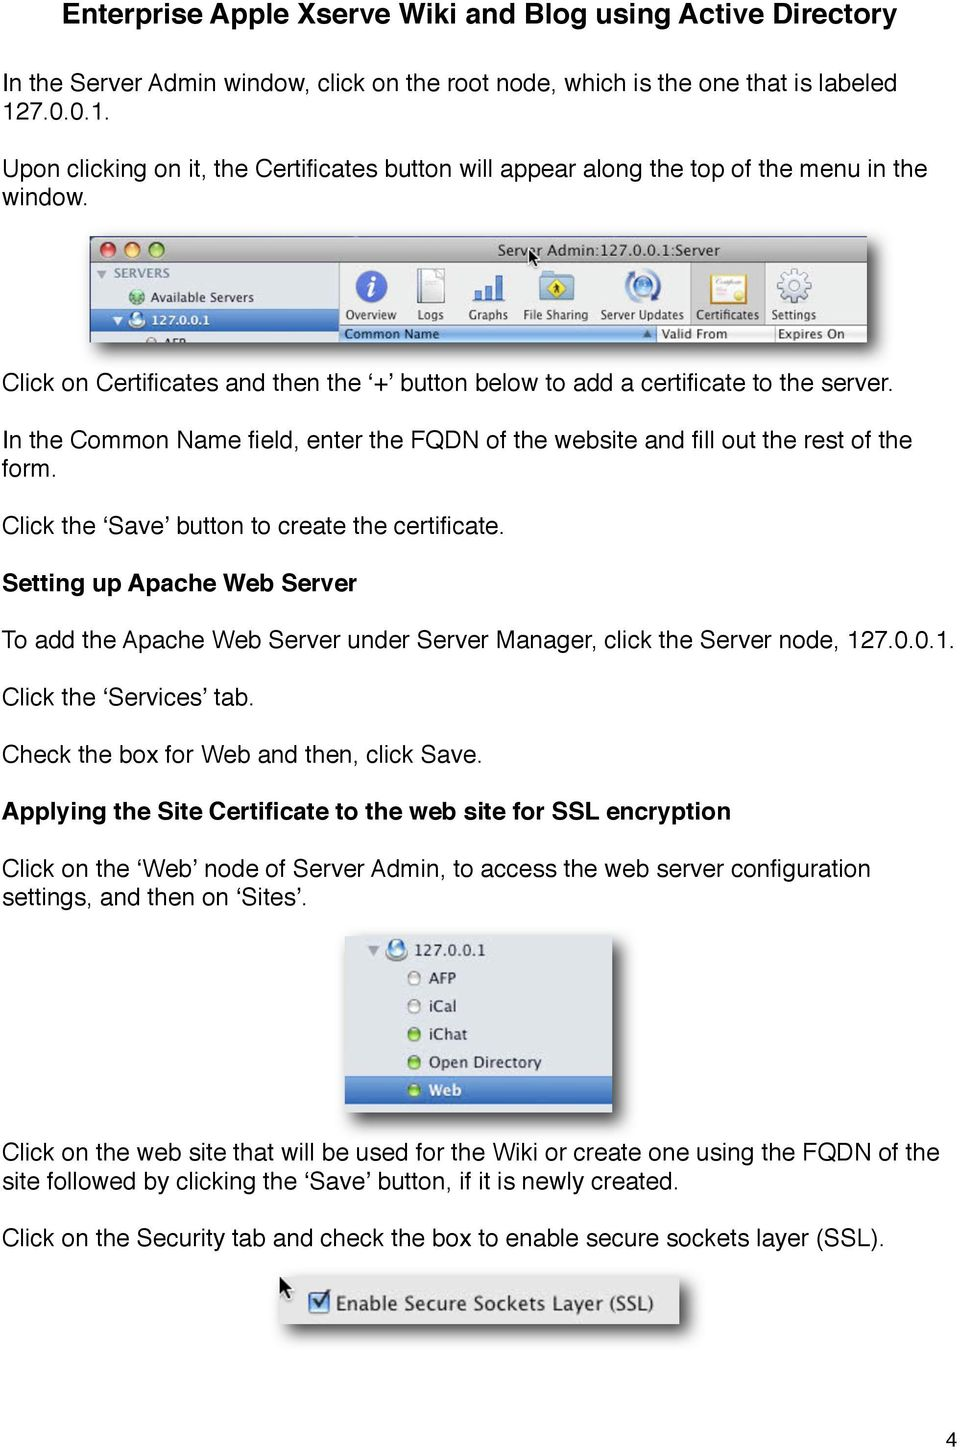 Click the ʻSave' button to create the certificate. Setting up Apache Web Server To add the Apache Web Server under Server Manager, click the Server node, 127.0.0.1. Click the ʻServices' tab.